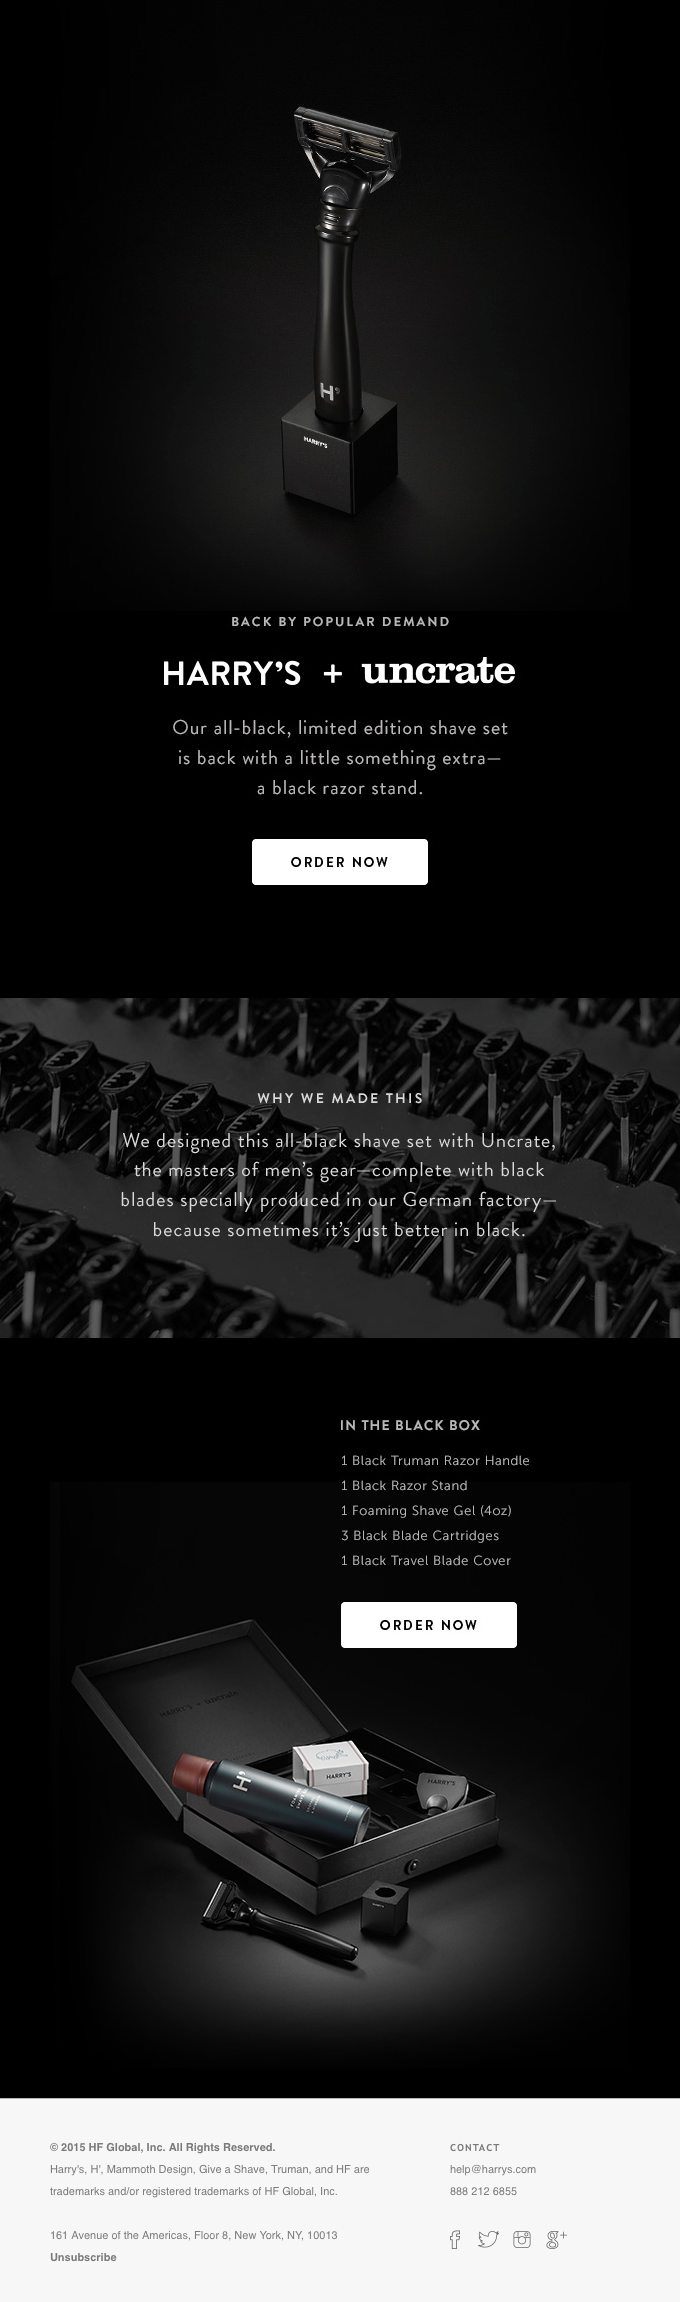 Harry's - Back in Black email design trends